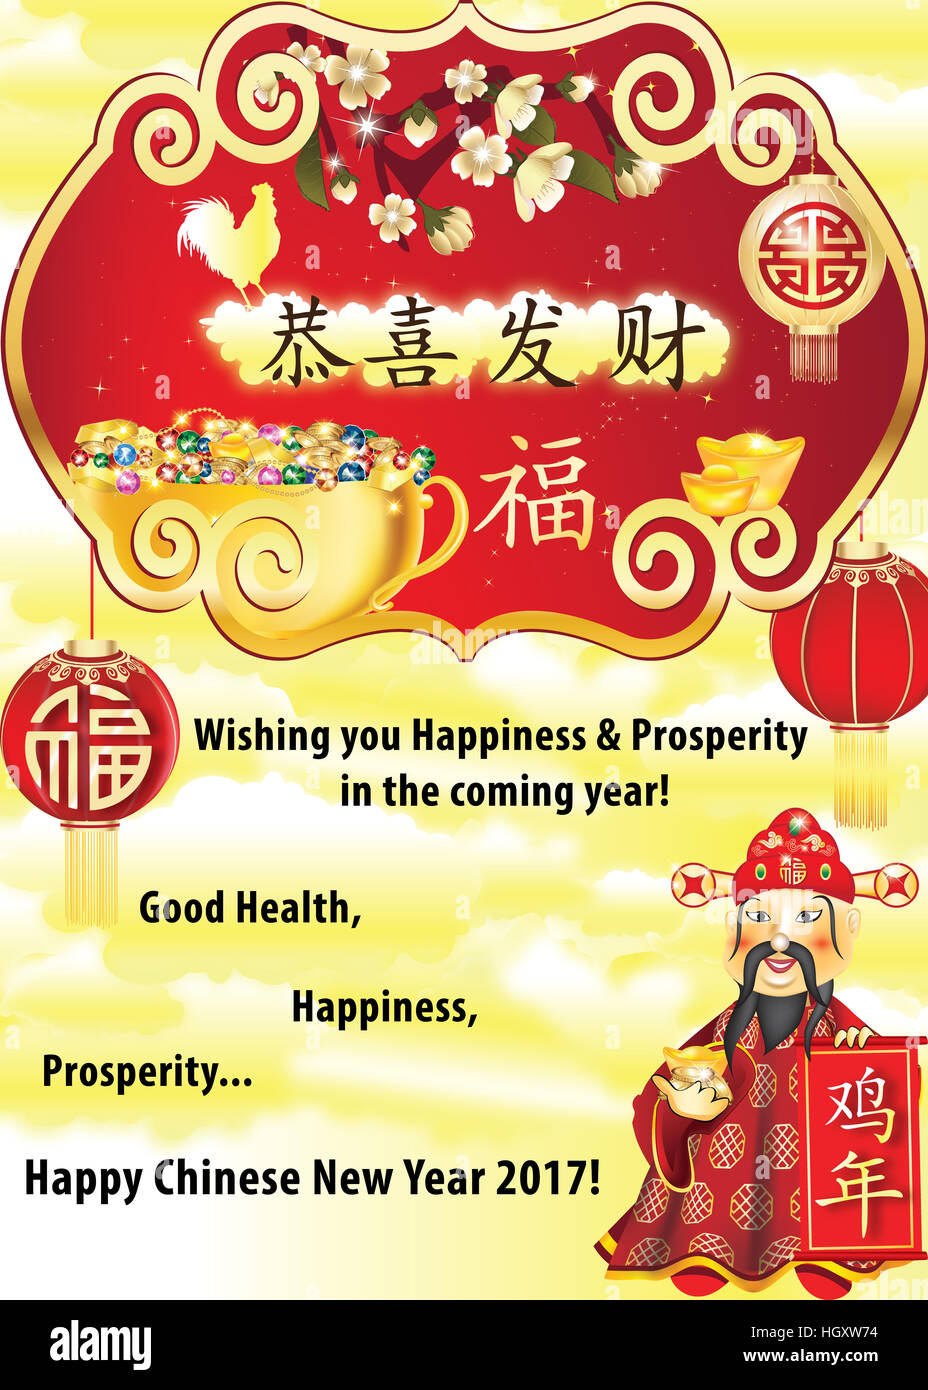 printable chinese new year 2017 greeting card chinese text congratulations and prosperity gong